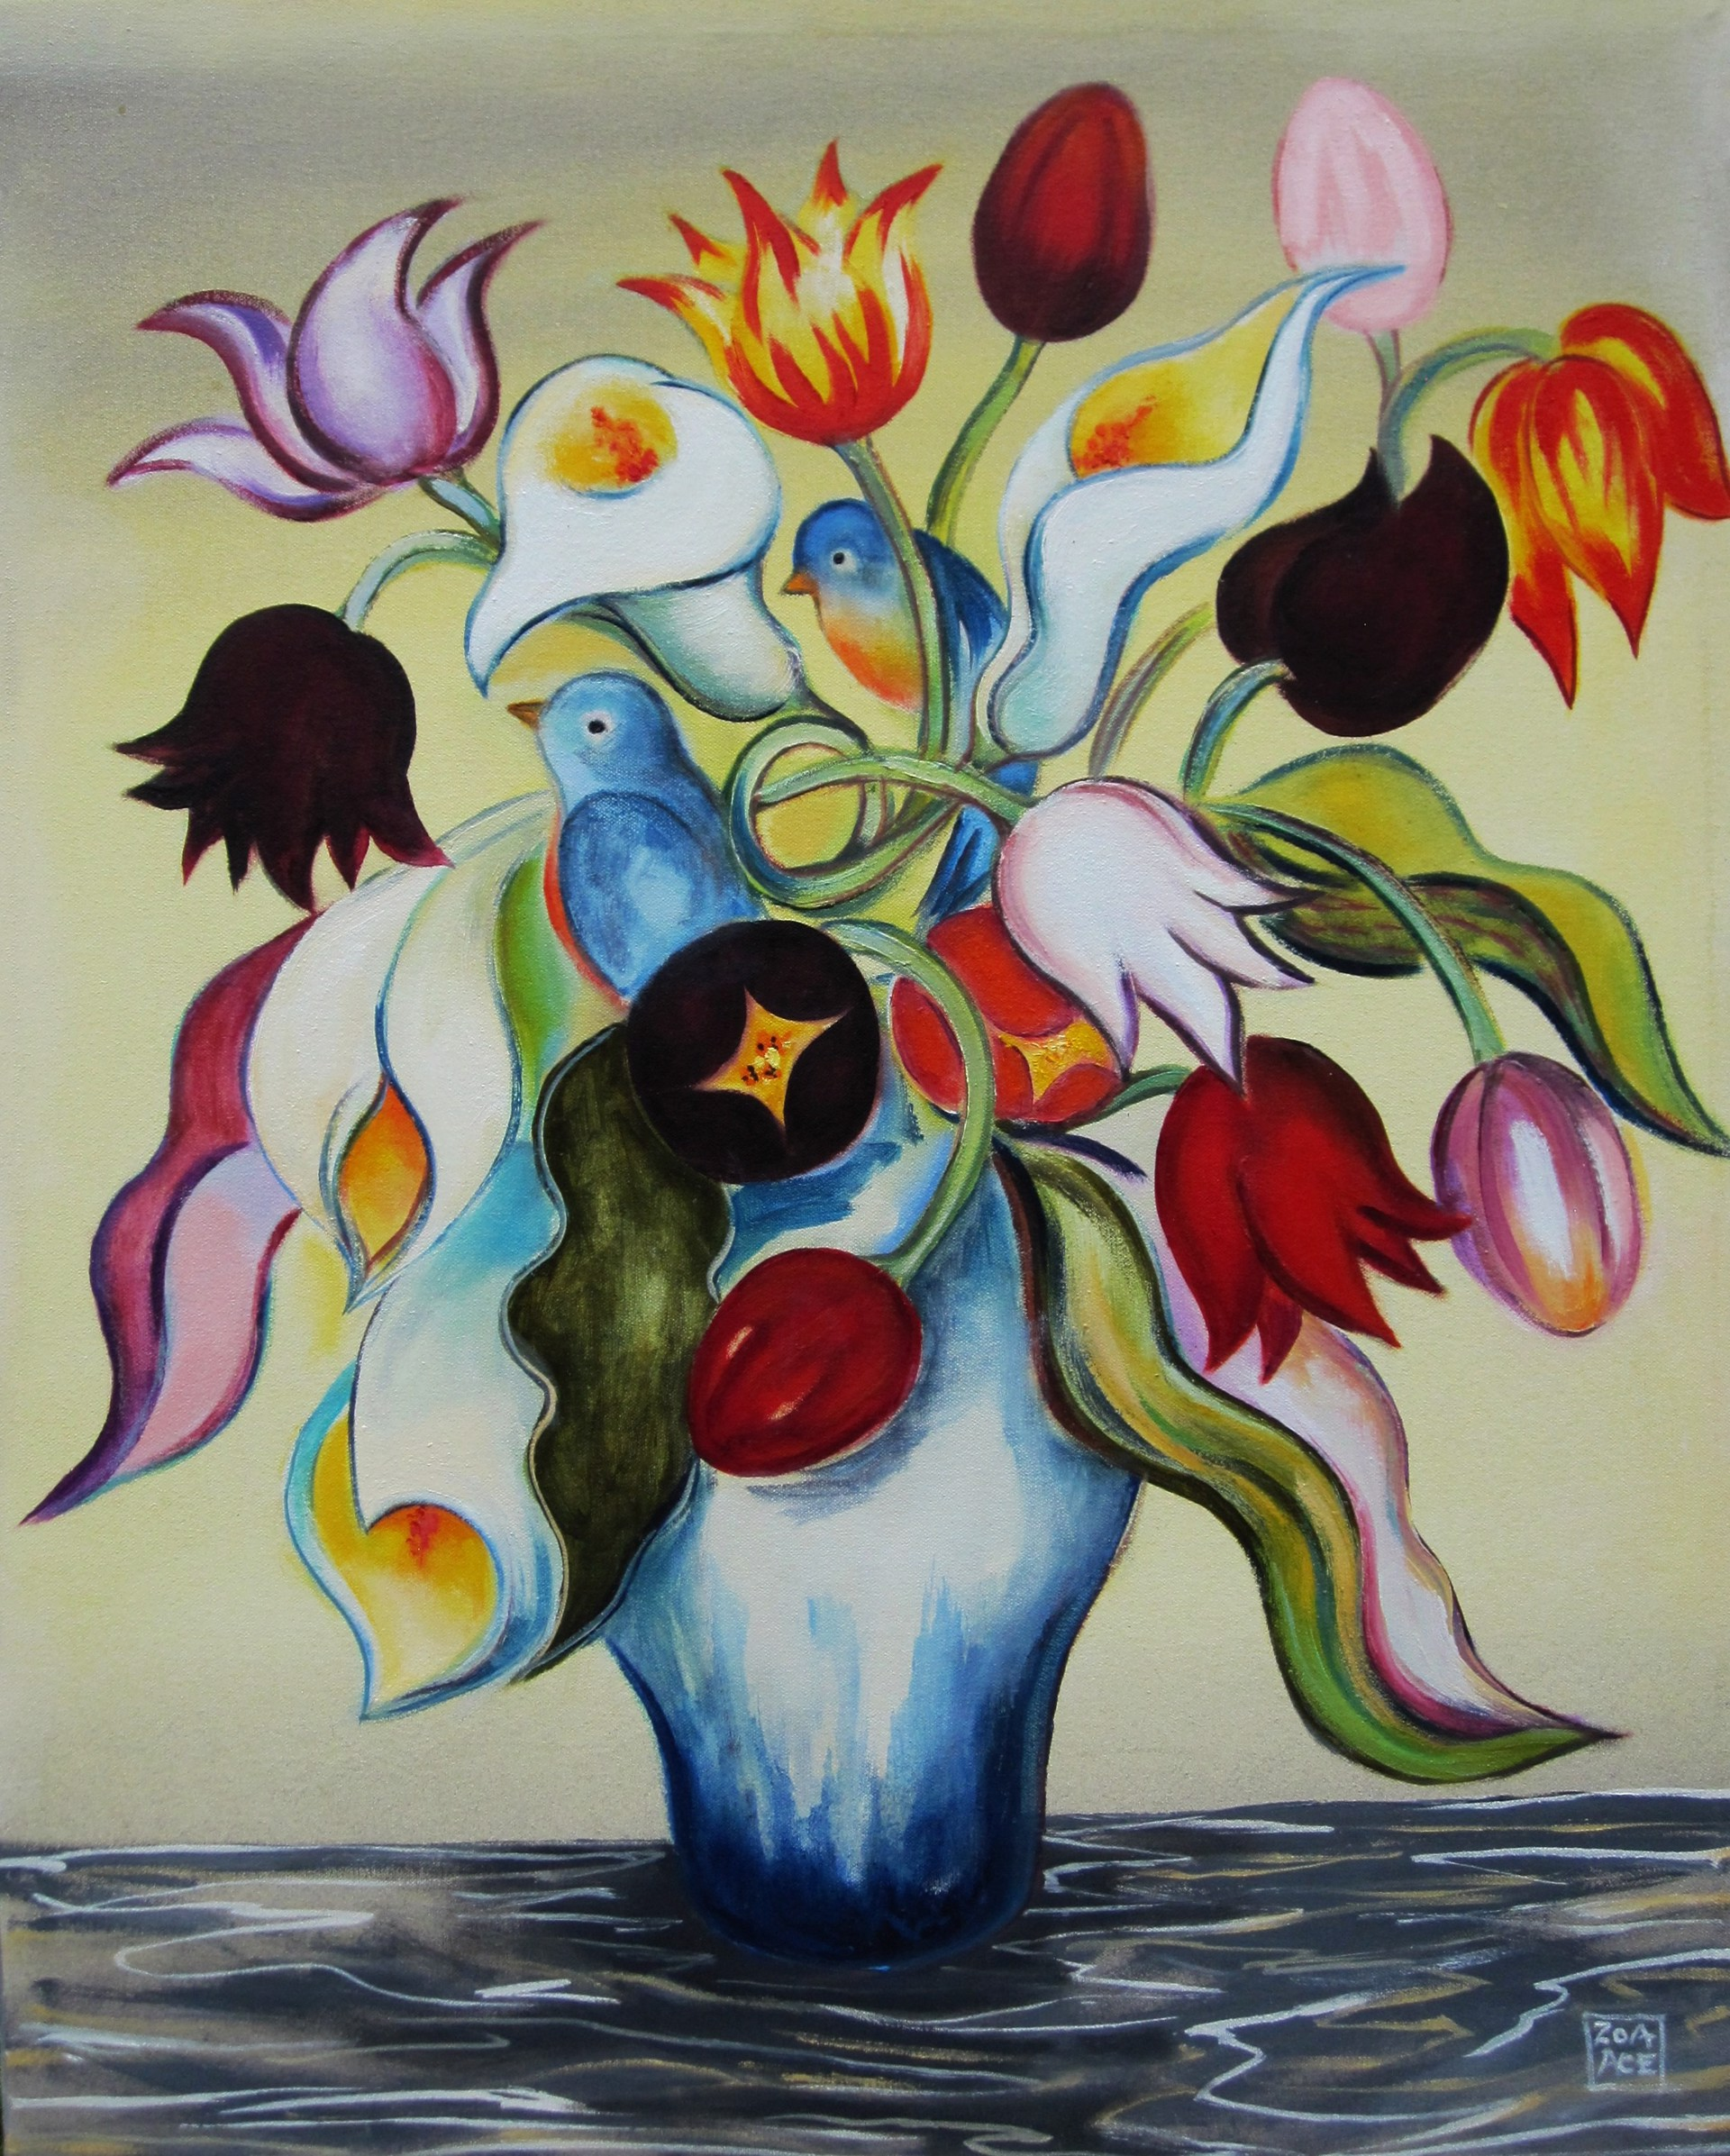 Bouquet with Blue Birds by Zoa Ace